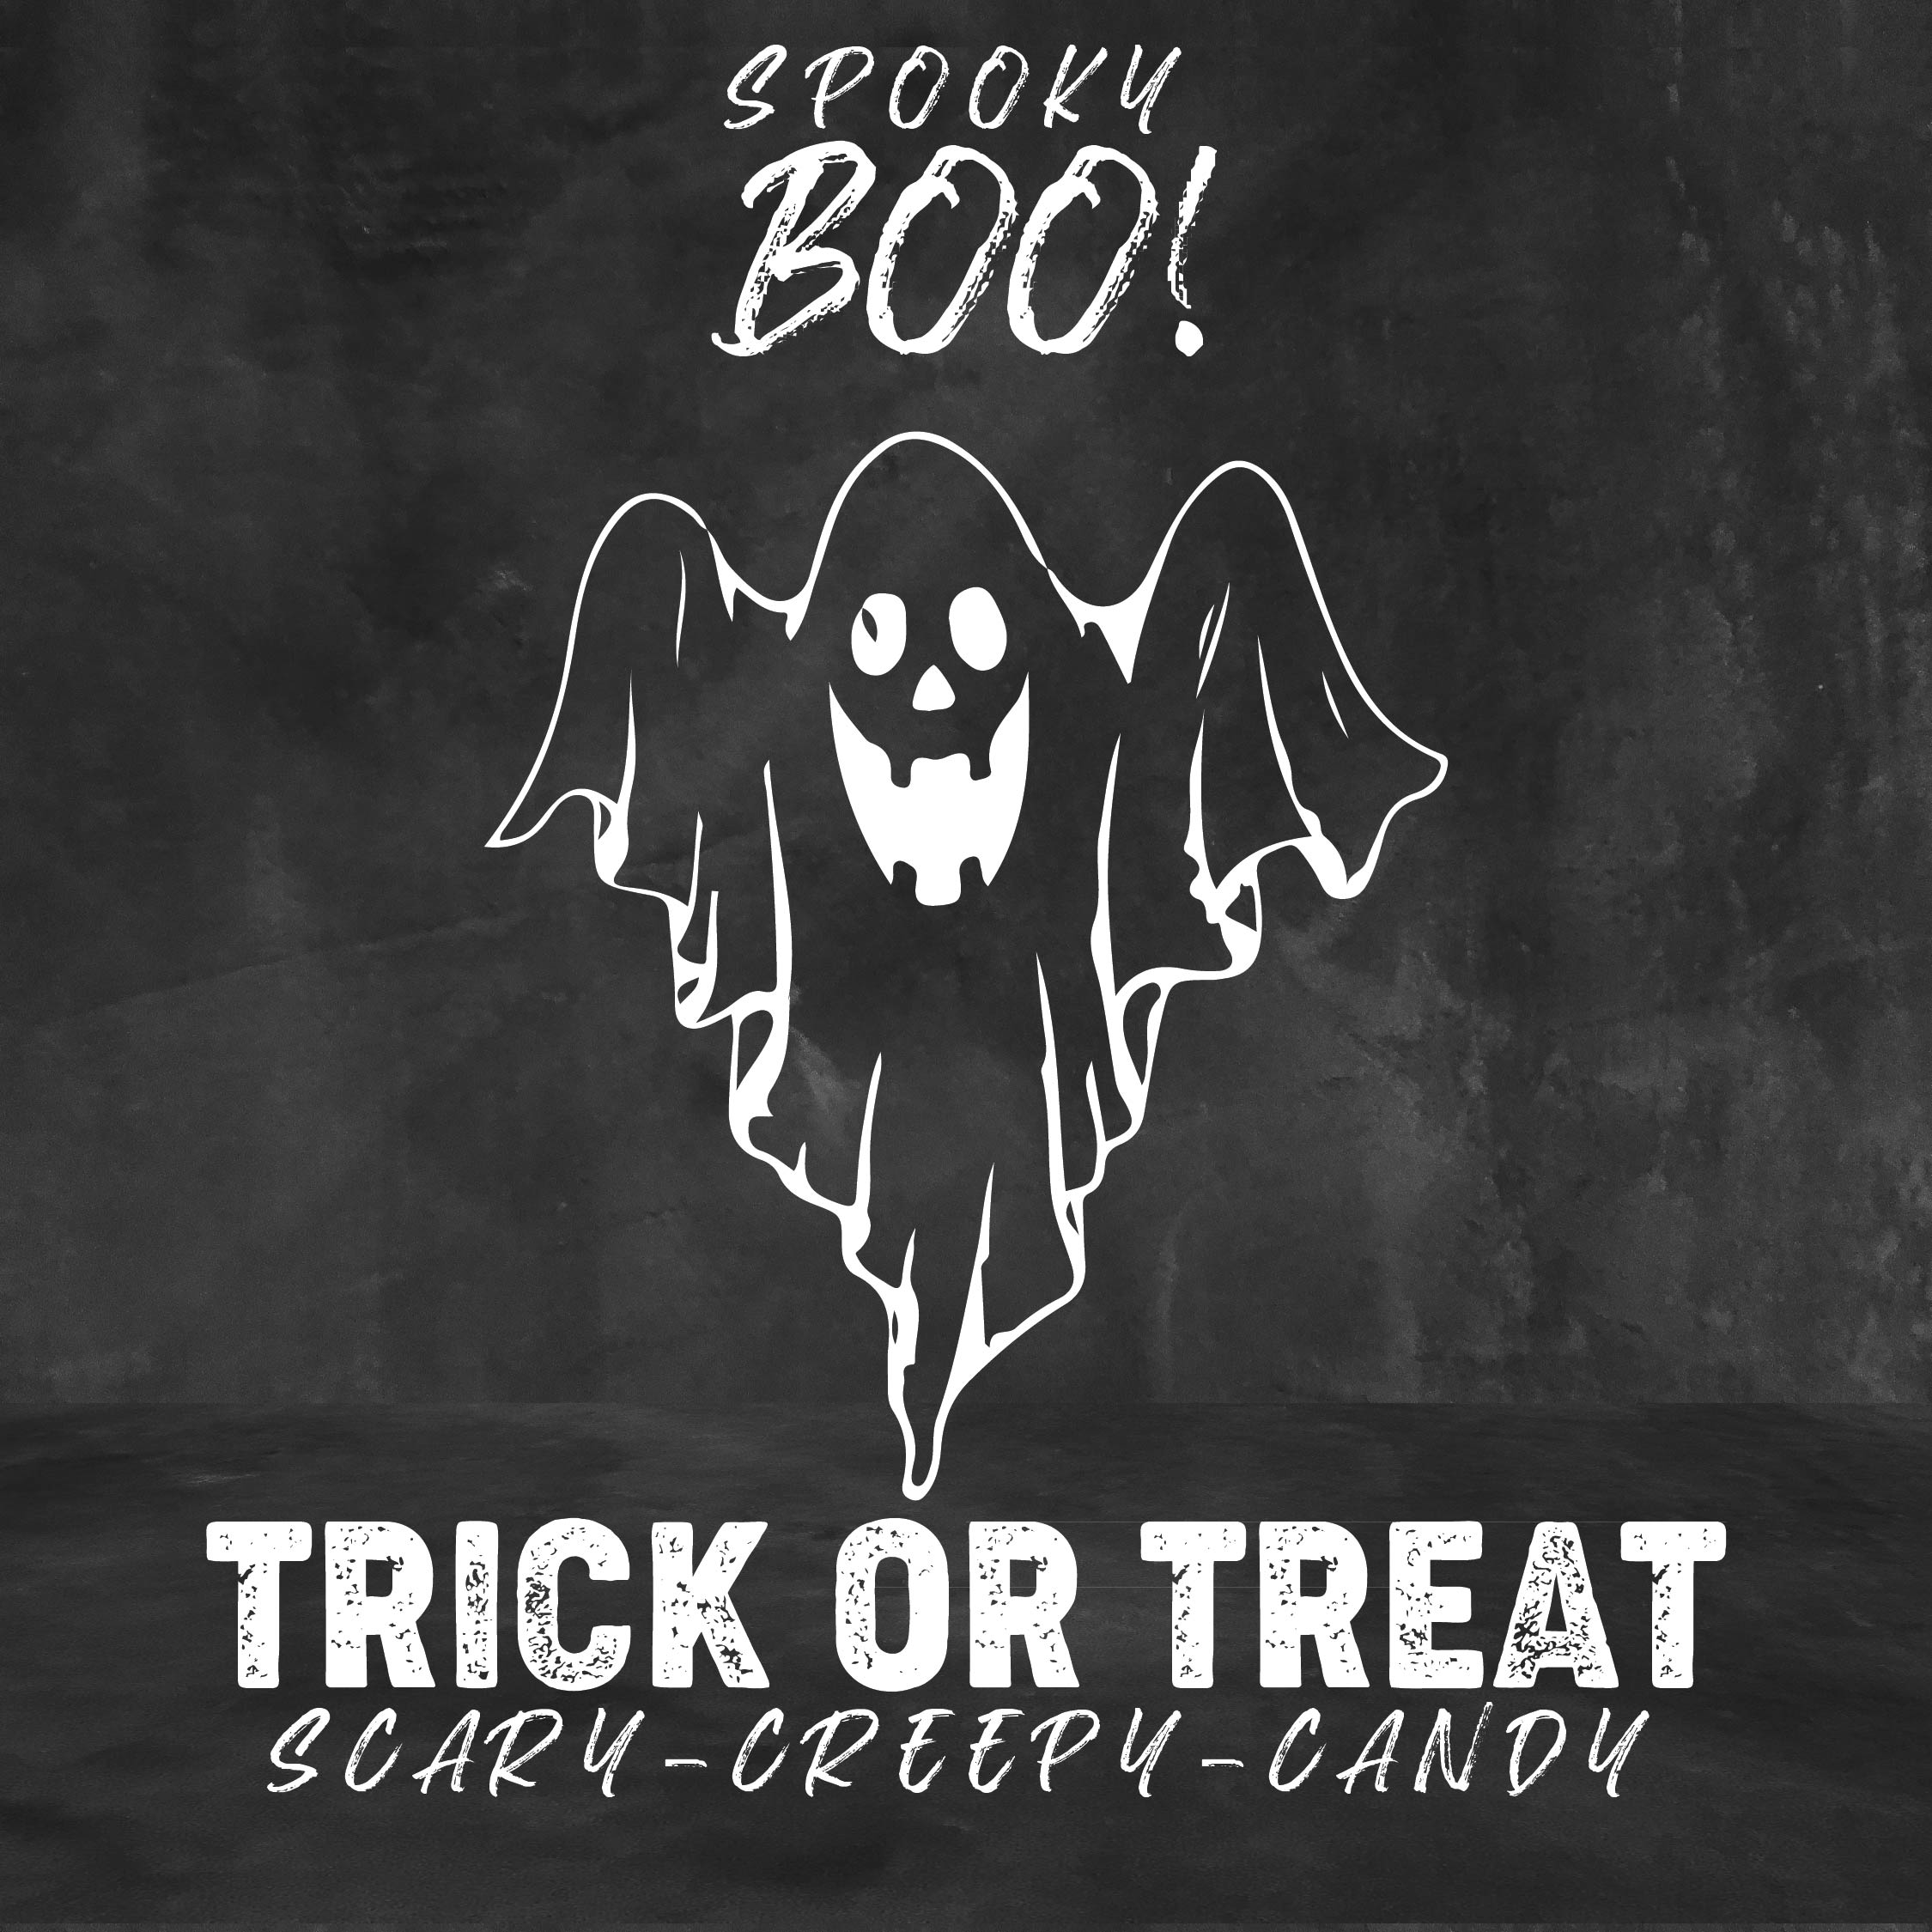 Printable Halloween Chalkboard Art